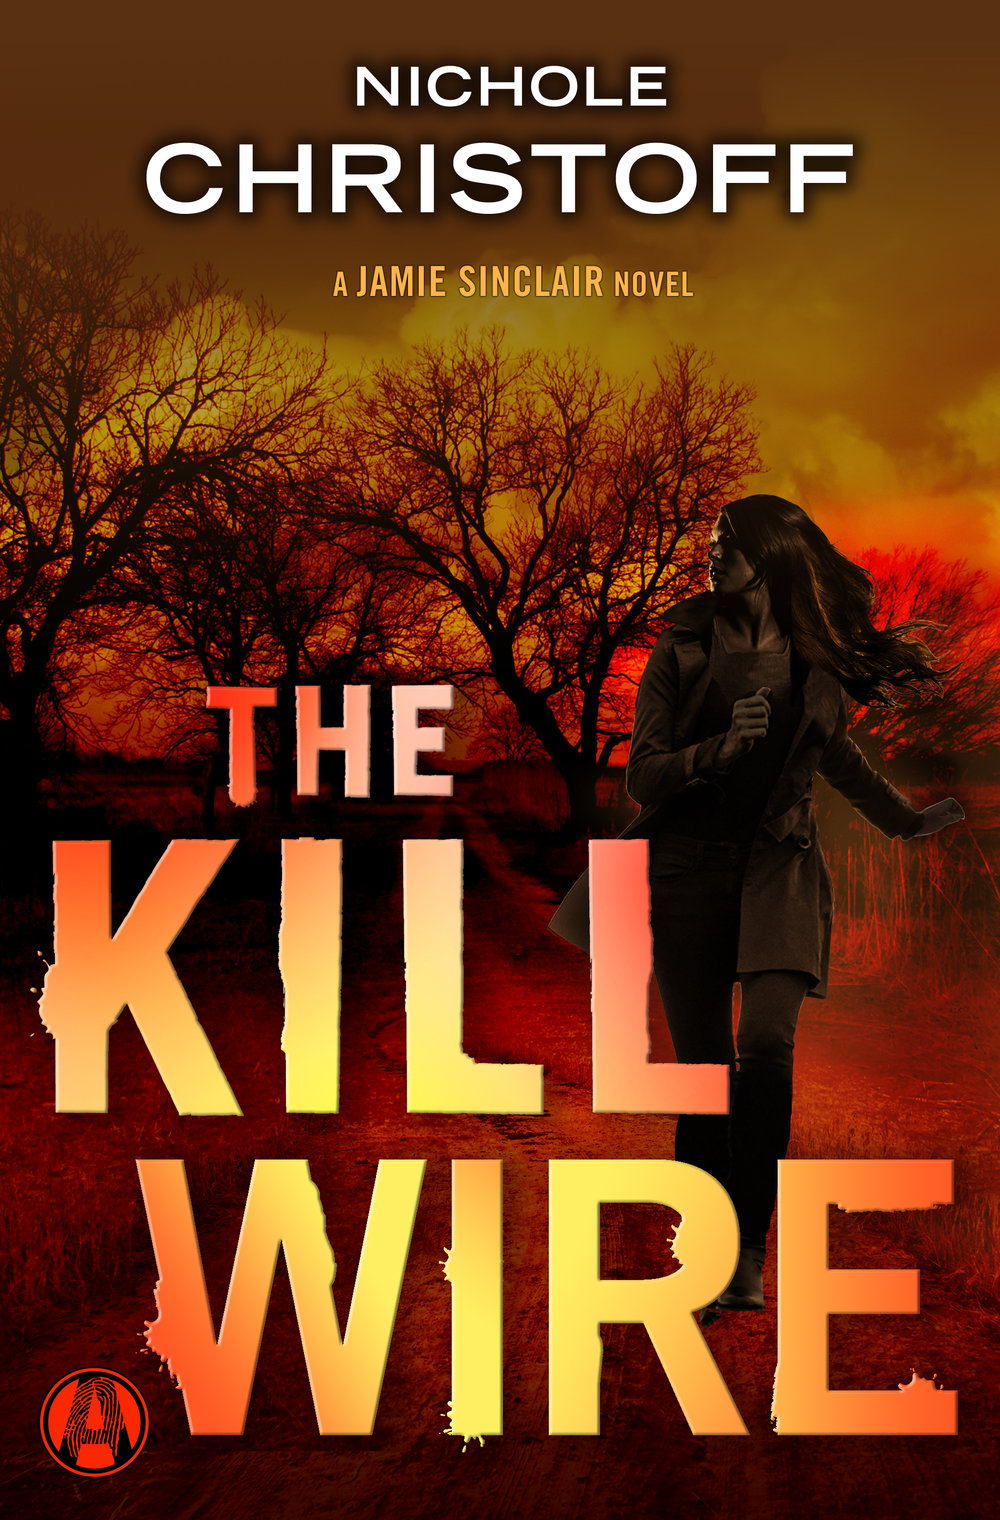 The Kill Wire  - A single text message sends private-eye-turned-security-specialist Jamie Sinclair on a cross-country chase in search for the missing mother of a DEA agent's child, brings her to a crossroads with the military cop who loves her, and puts her on a collision course with killers who'll stop at nothing to get what they want.